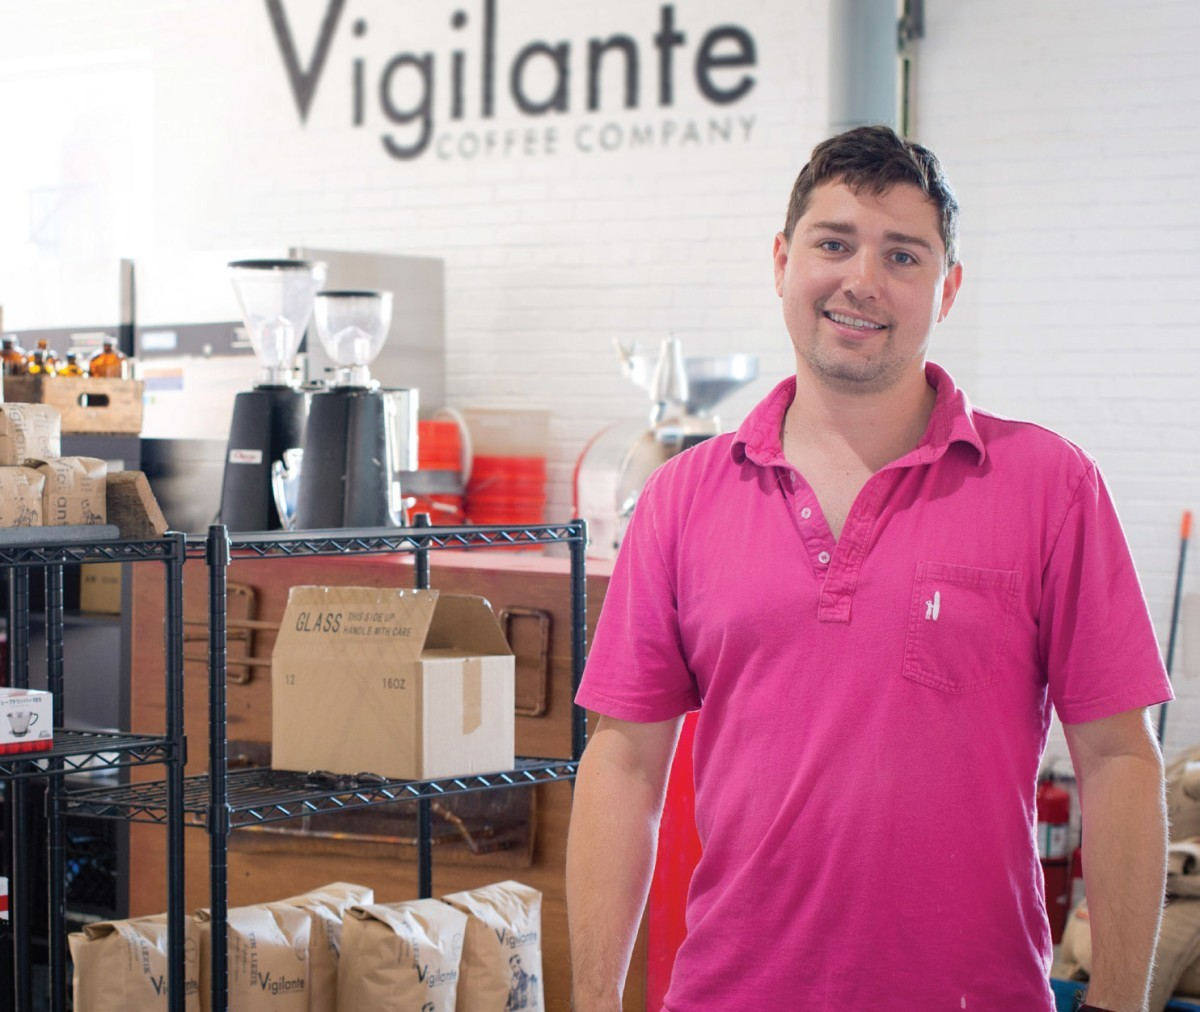 Daniel Simon is leasing space in his newly renovated building on Gallatin Street to Vigilante Coffee Company, which is scheduled to open July 19. Photo courtesy Andrew Marder.